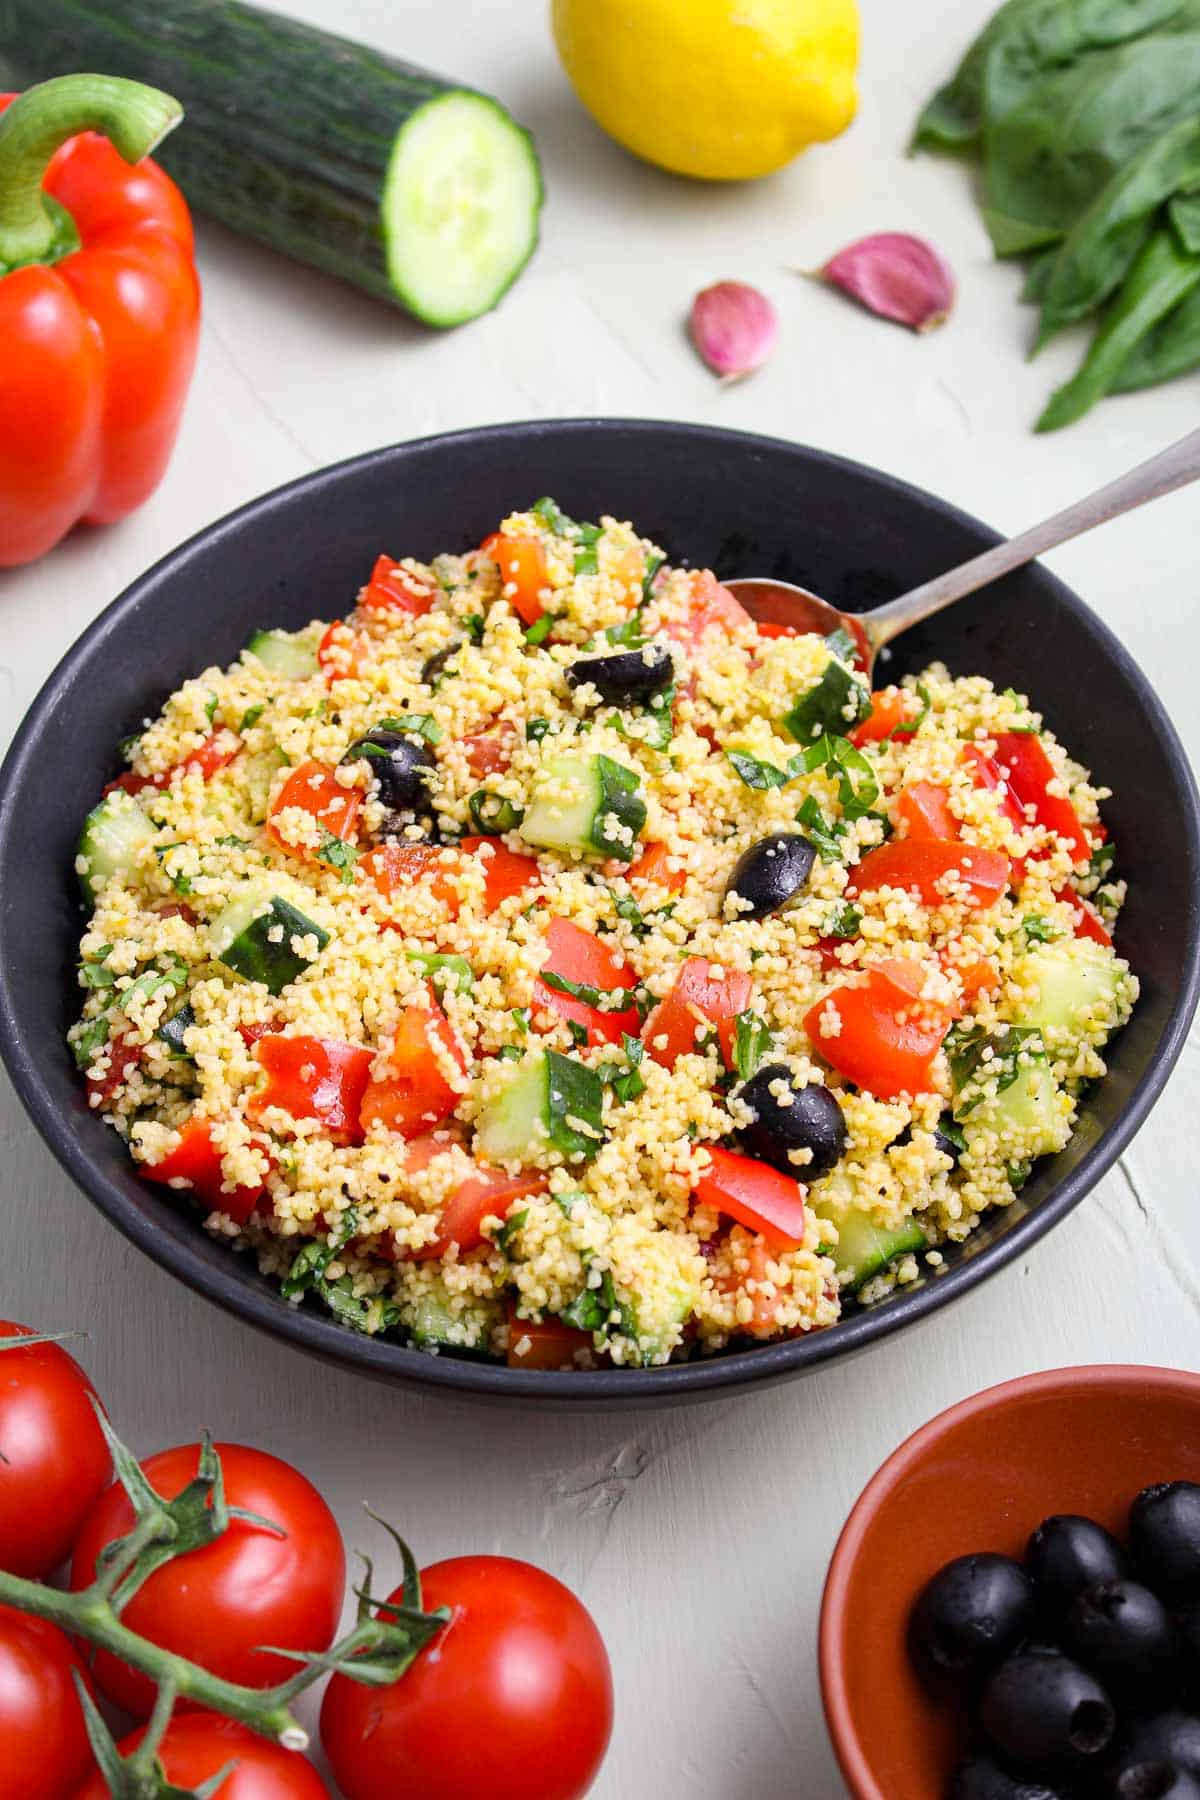 Mediterranean Couscous Salad Pictured with Ingredients